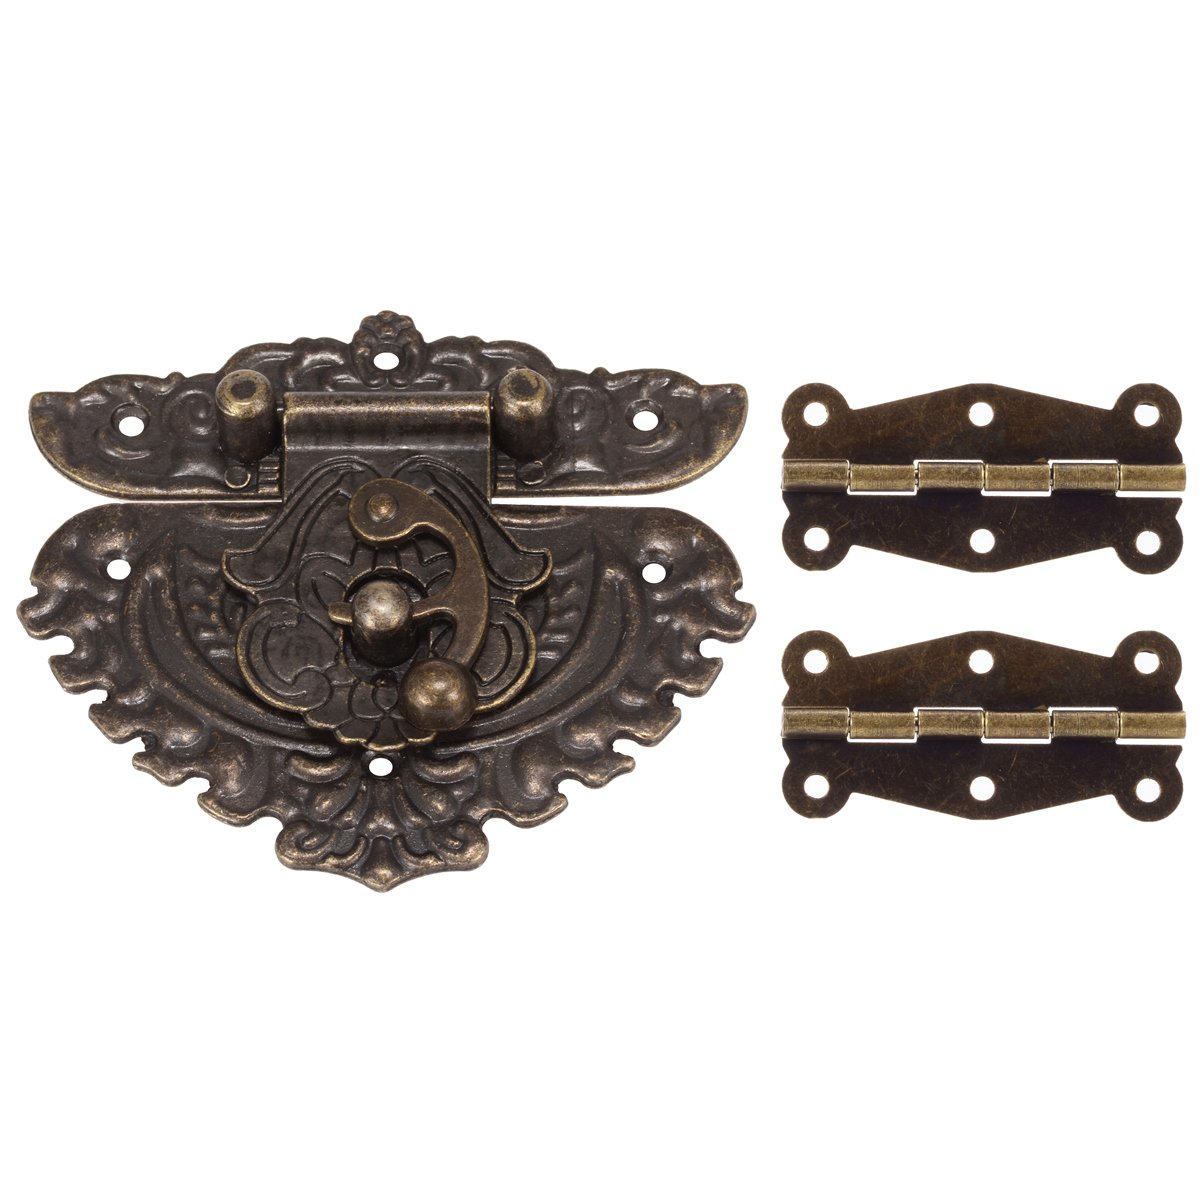 84MM Antique Bronze Embossing Latch Hasps with 50MM Brass Hinges and Screws for Wooden Jewelry Box Cabinet Decorative PAGOW